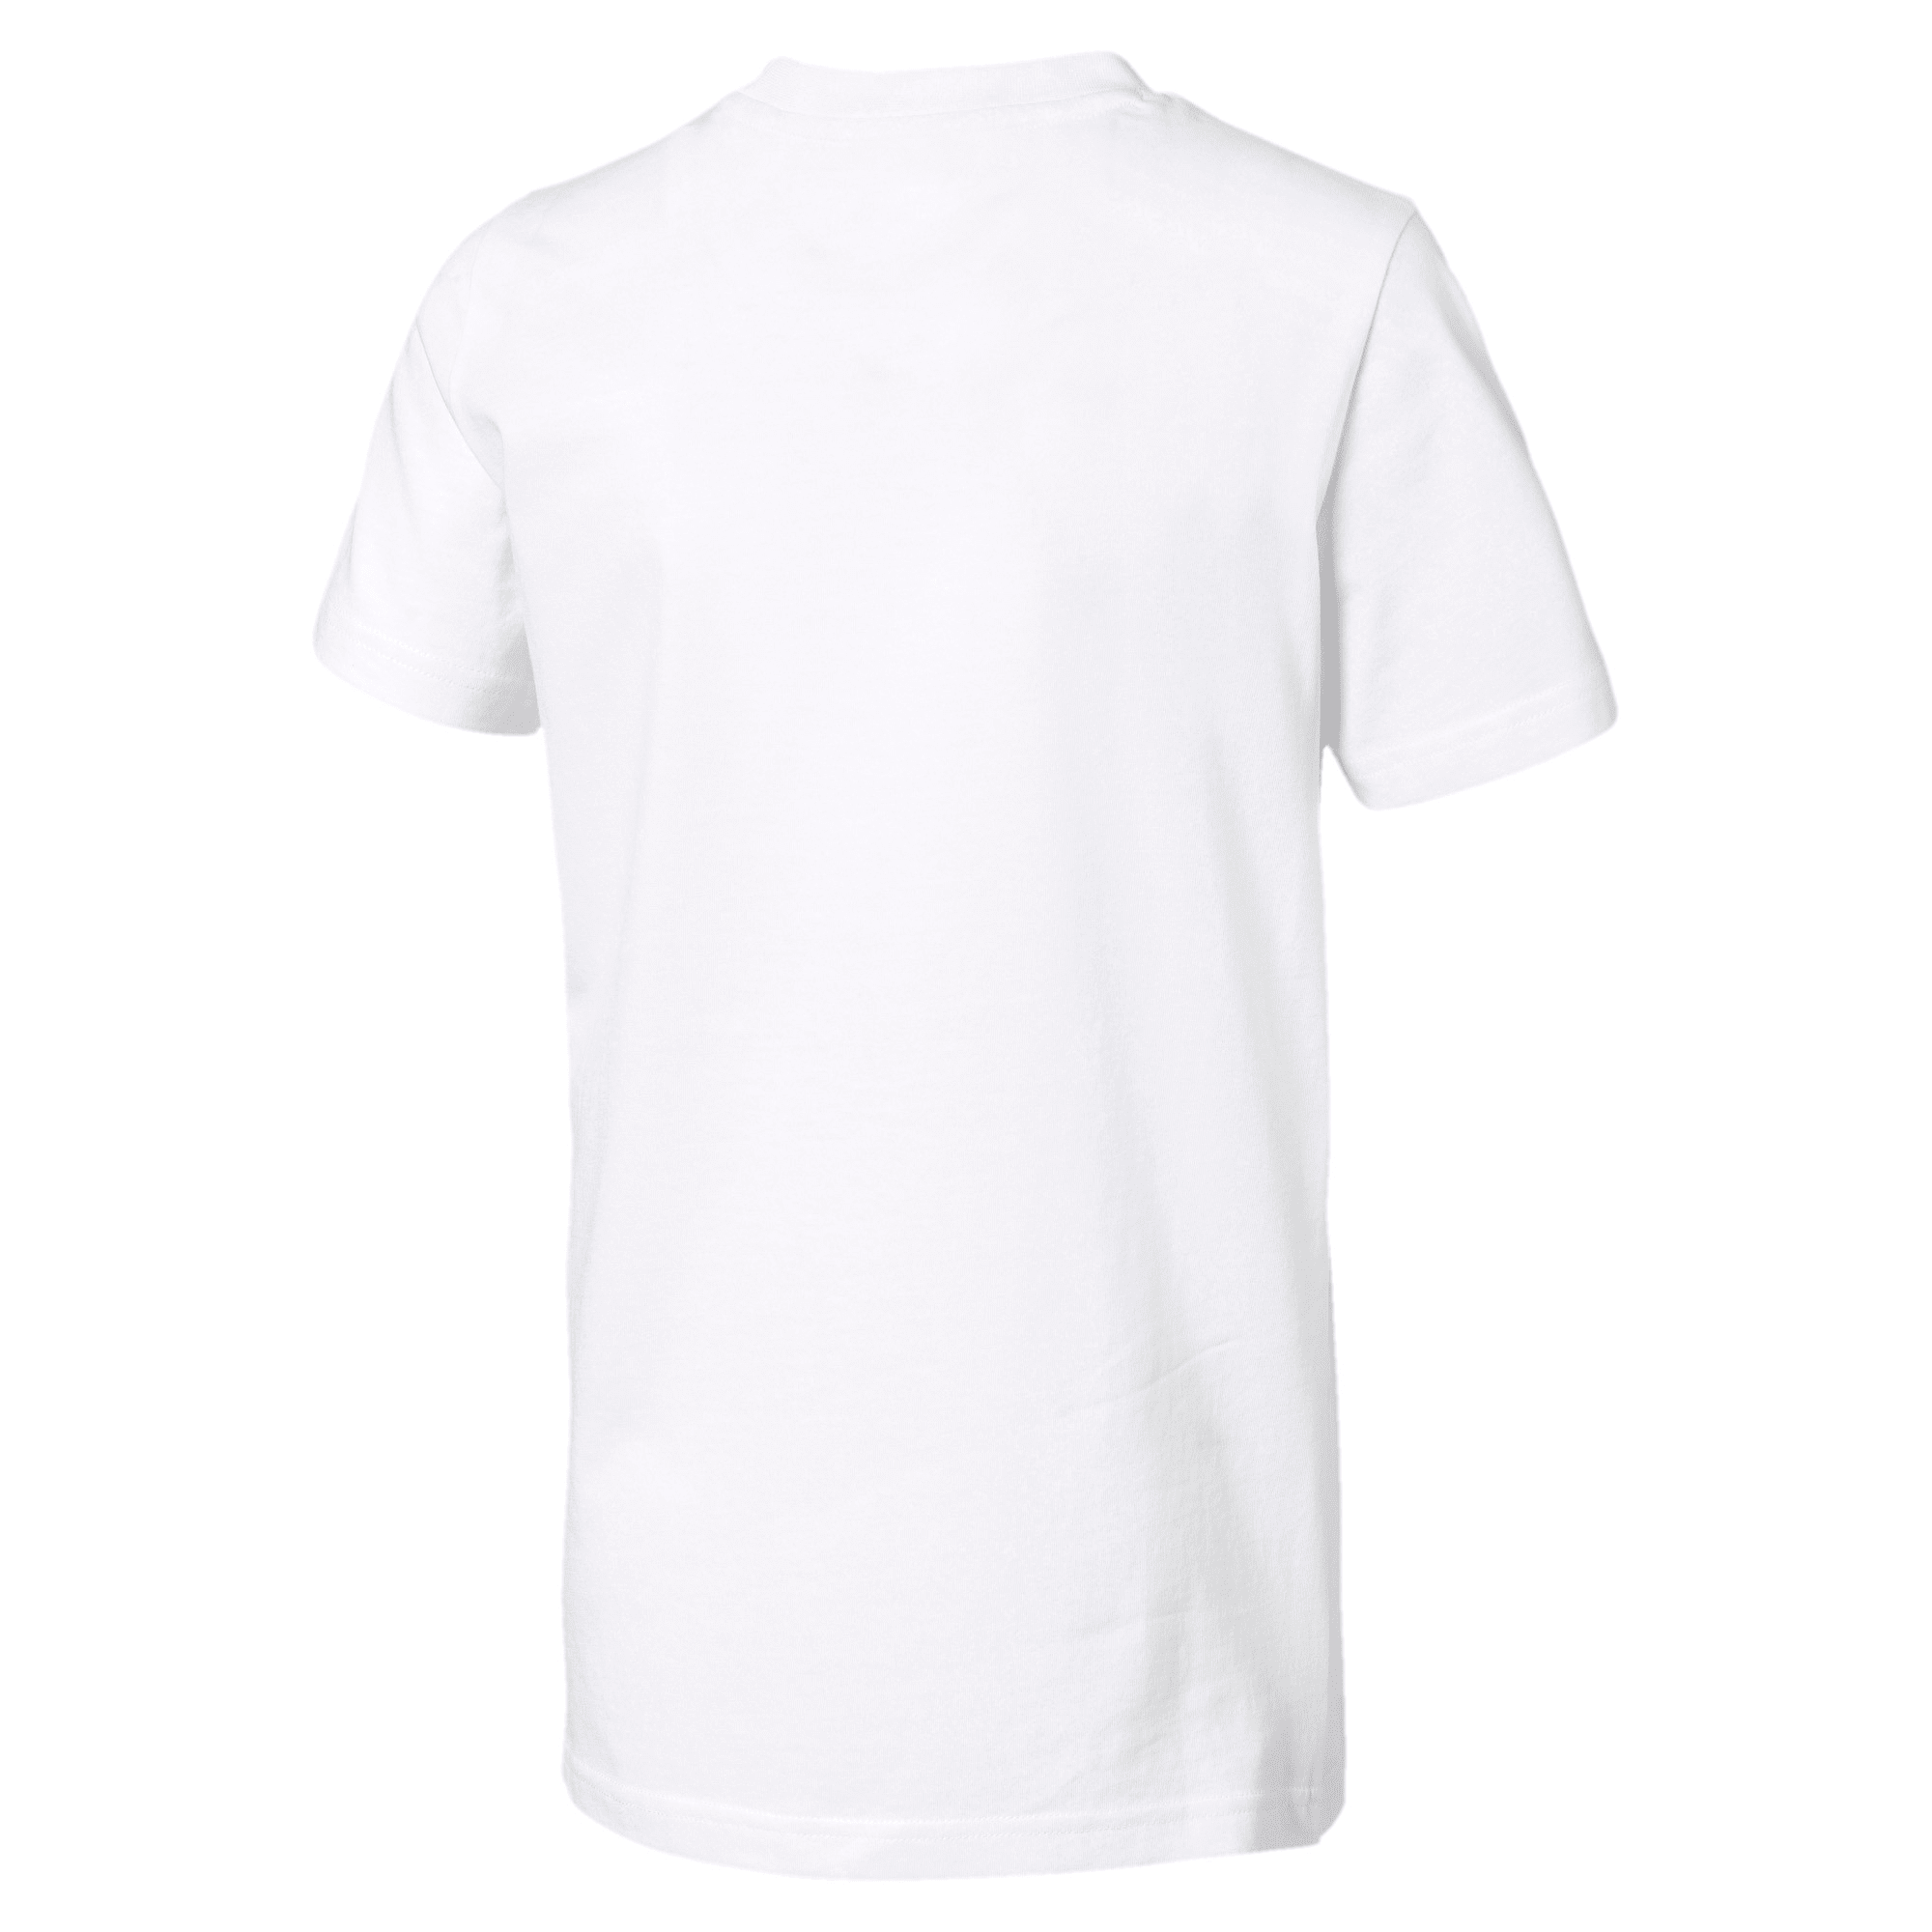 Thumbnail 2 of Rebel Bold Boys' Tee, Puma White, medium